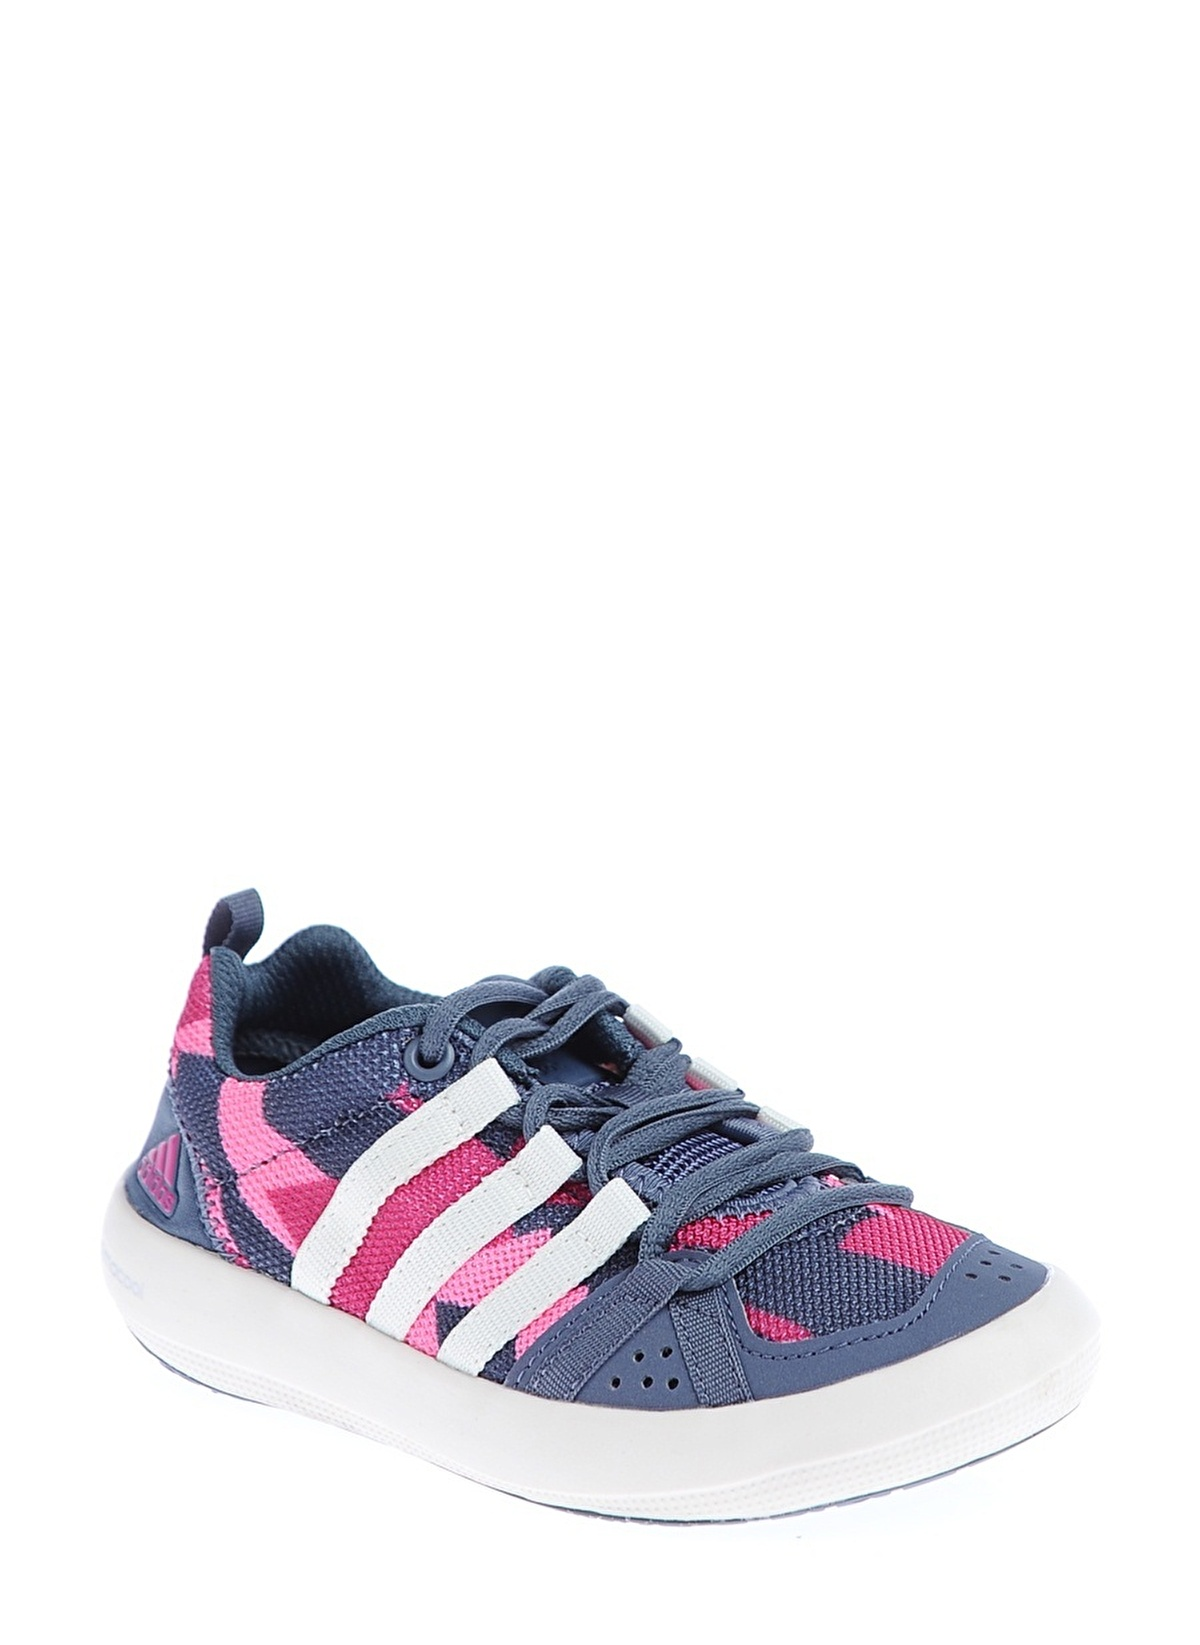 official photos 62fe3 e71bc adidas Climacool Boat Lace Beyaz ...